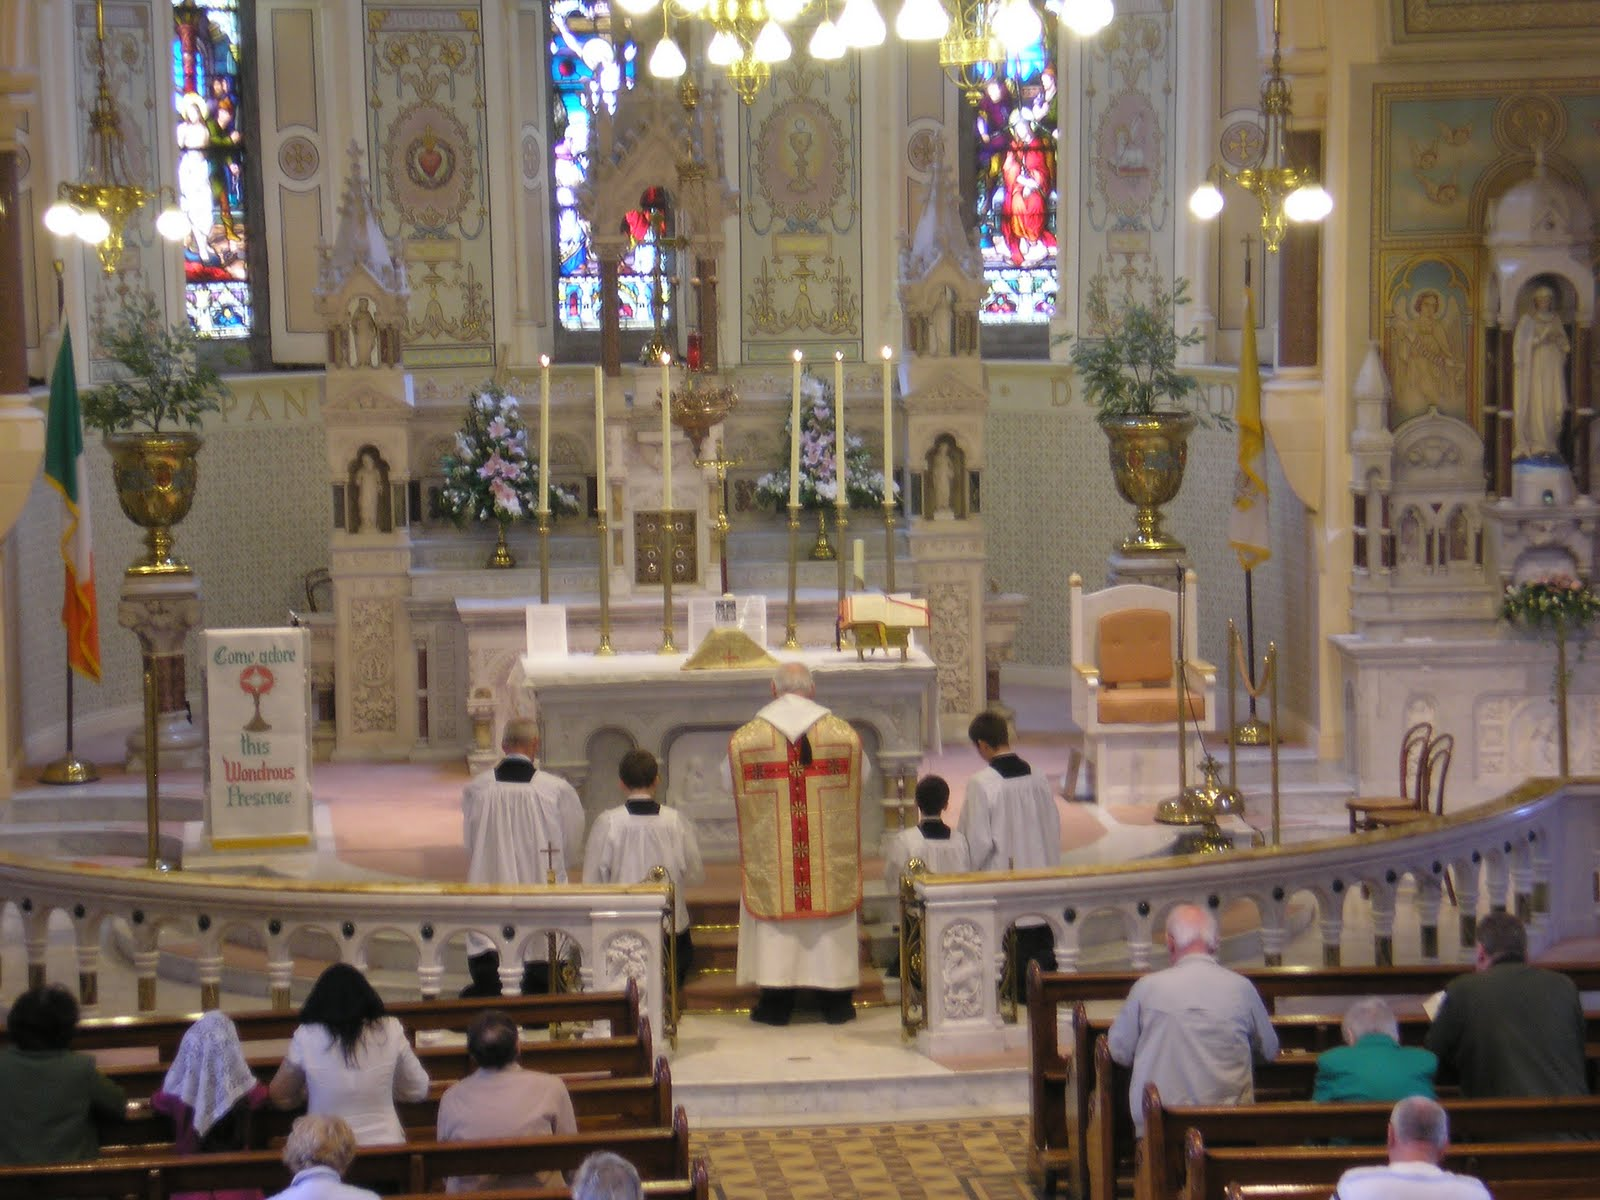 Lovely Free Church Hymns #1: Abbeyleix+Church+Latin+Mass+Prayers.JPG